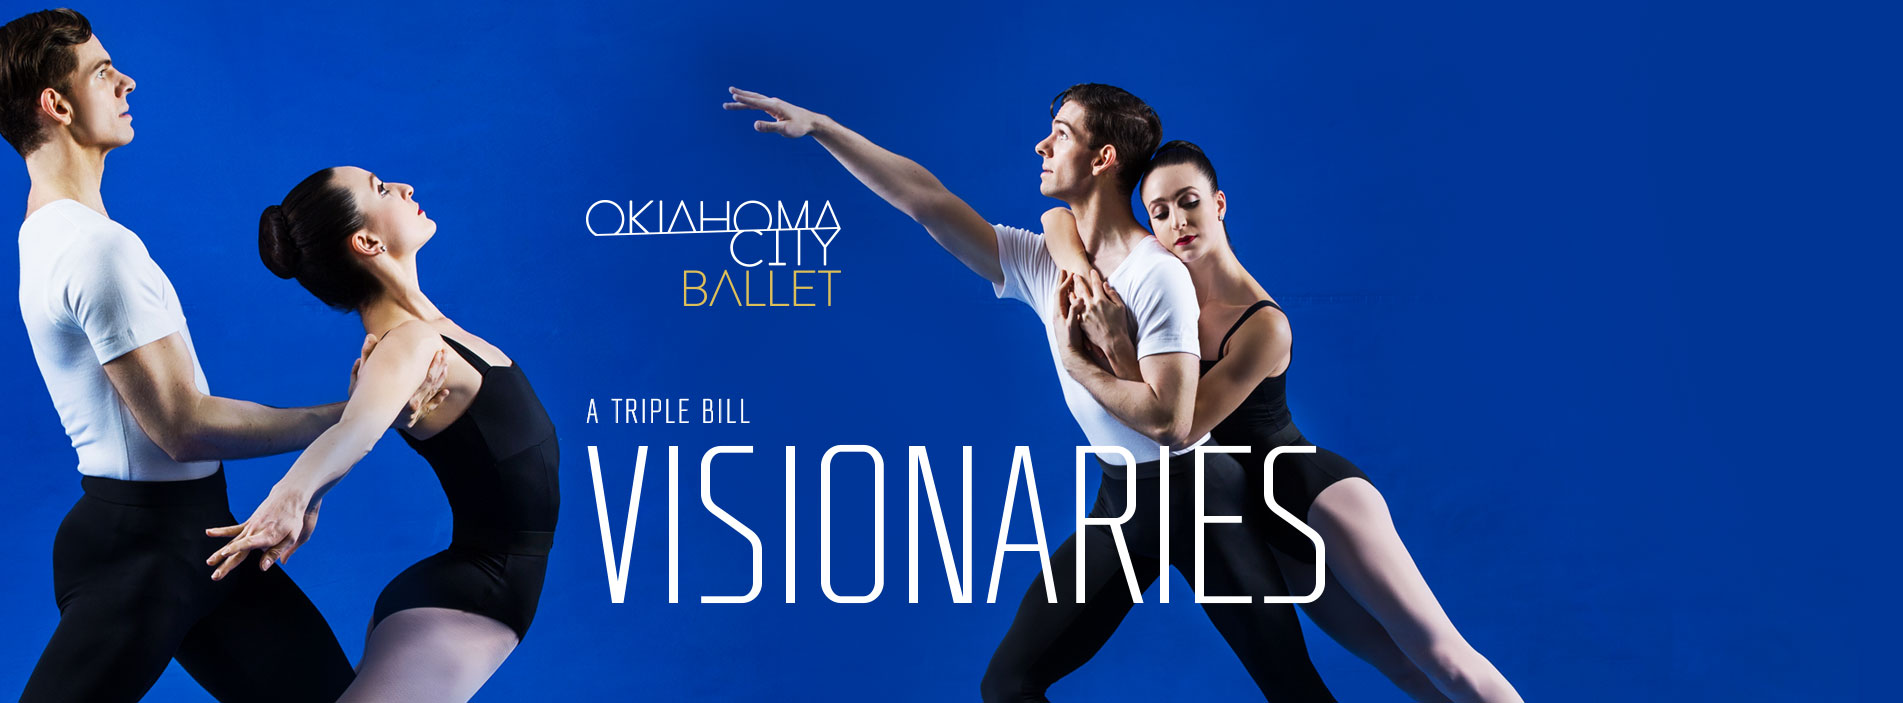 Visionaries - A Triple Bill